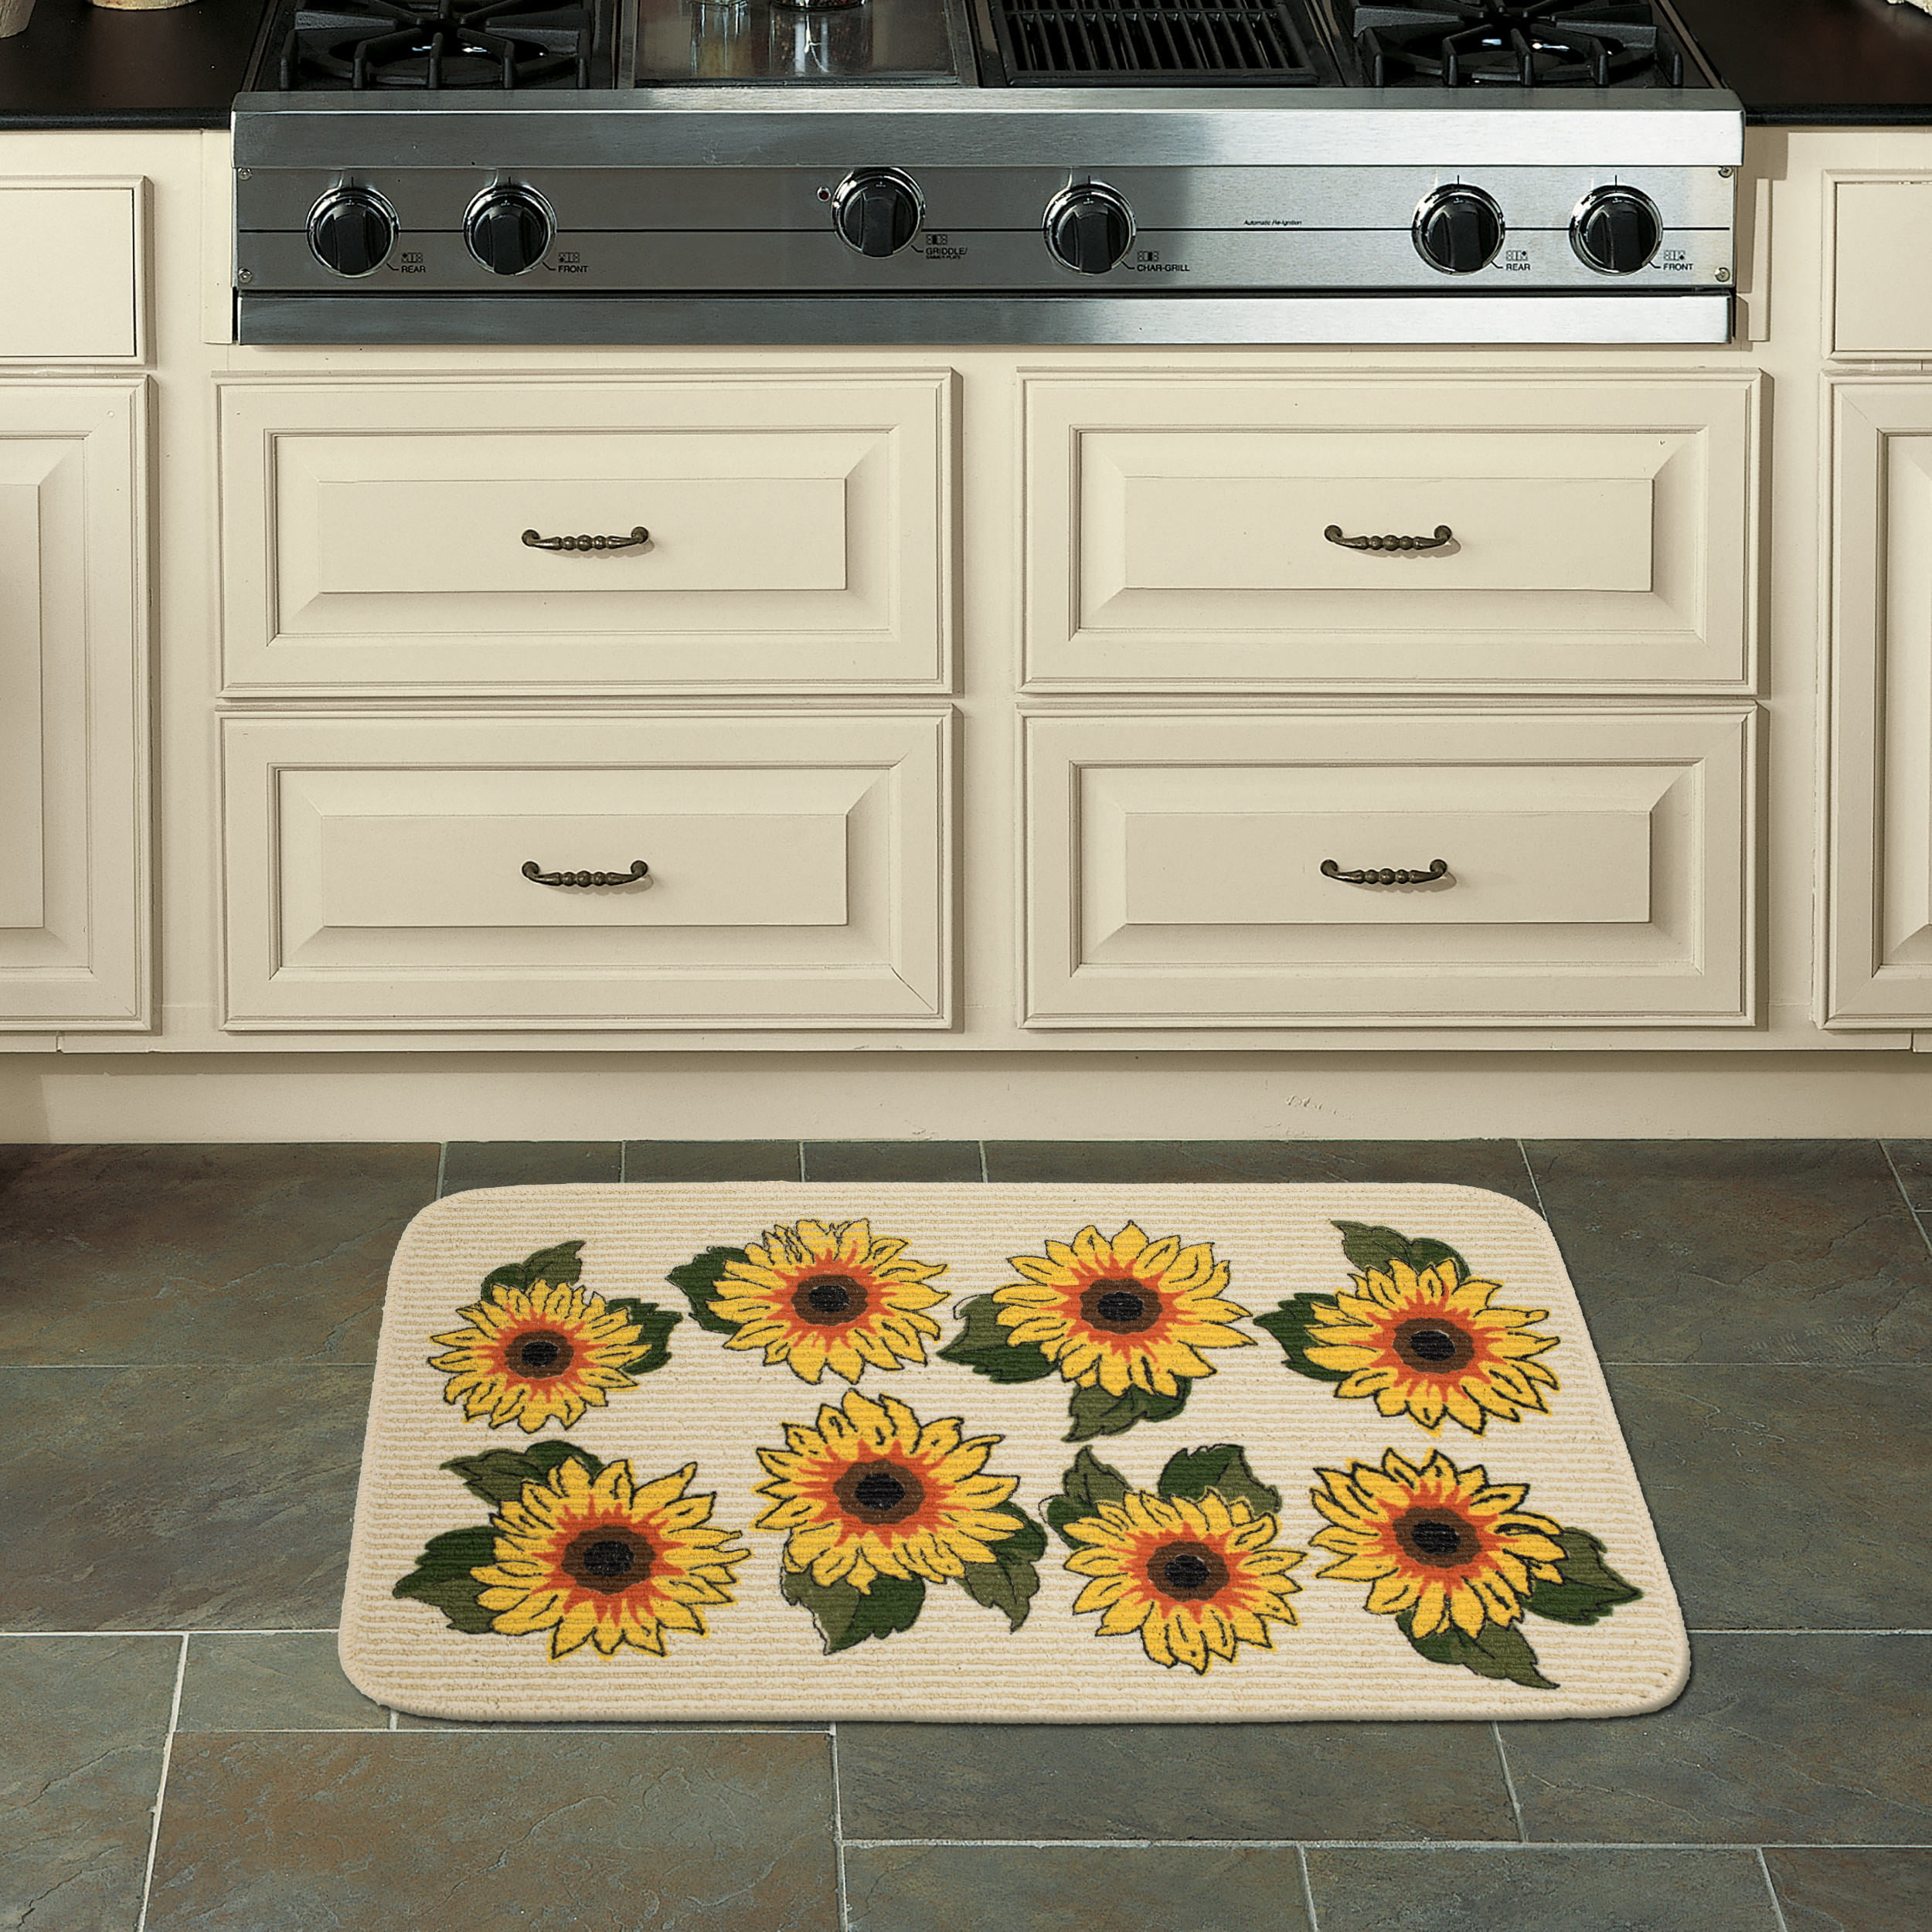 "Kitchen Accessories Walmart: Mainstays Sunflower Kitchen Mat, 18"" X 30"""